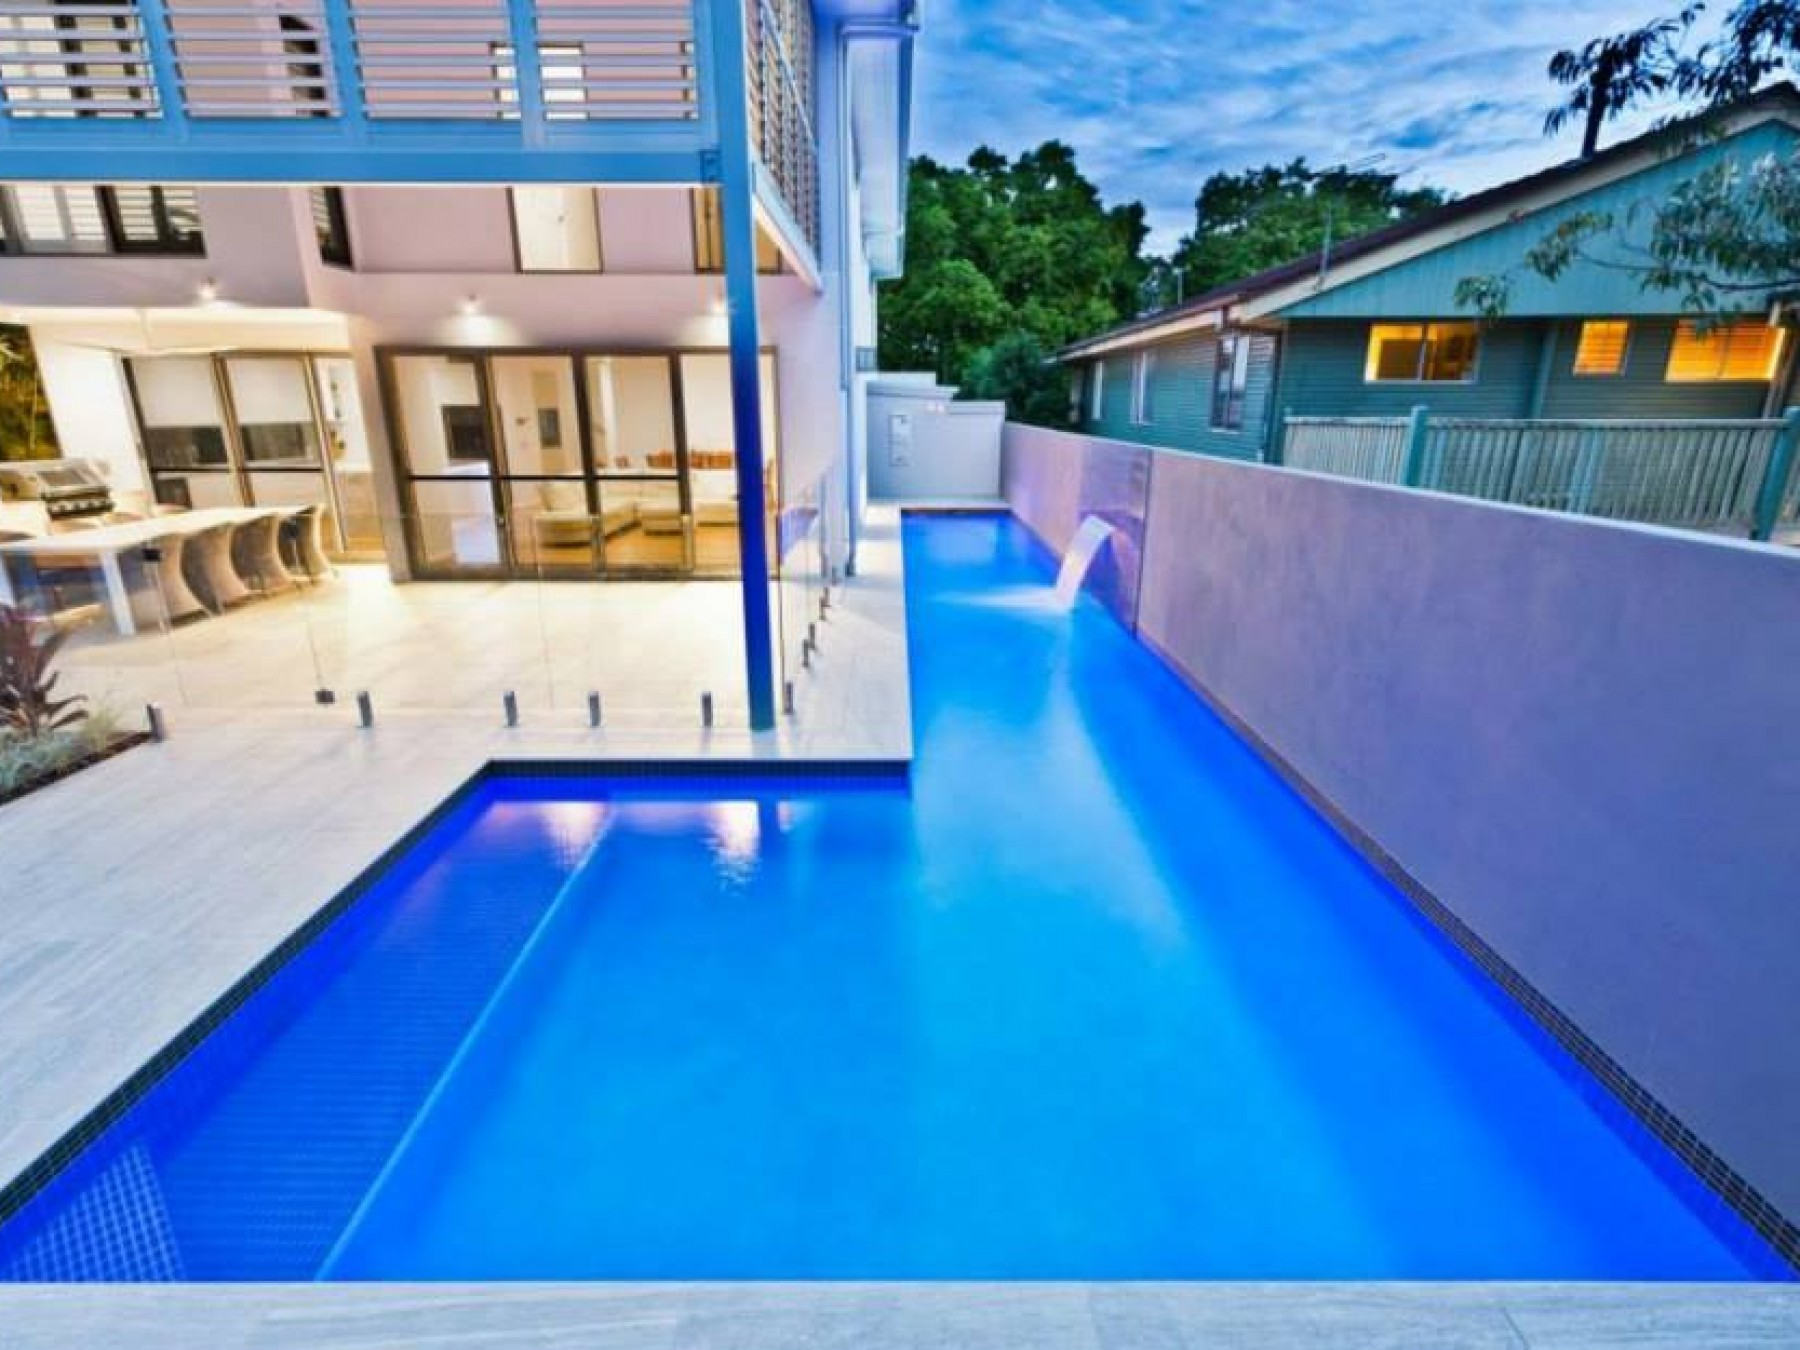 Selling or Leasing a pool in Bulimba